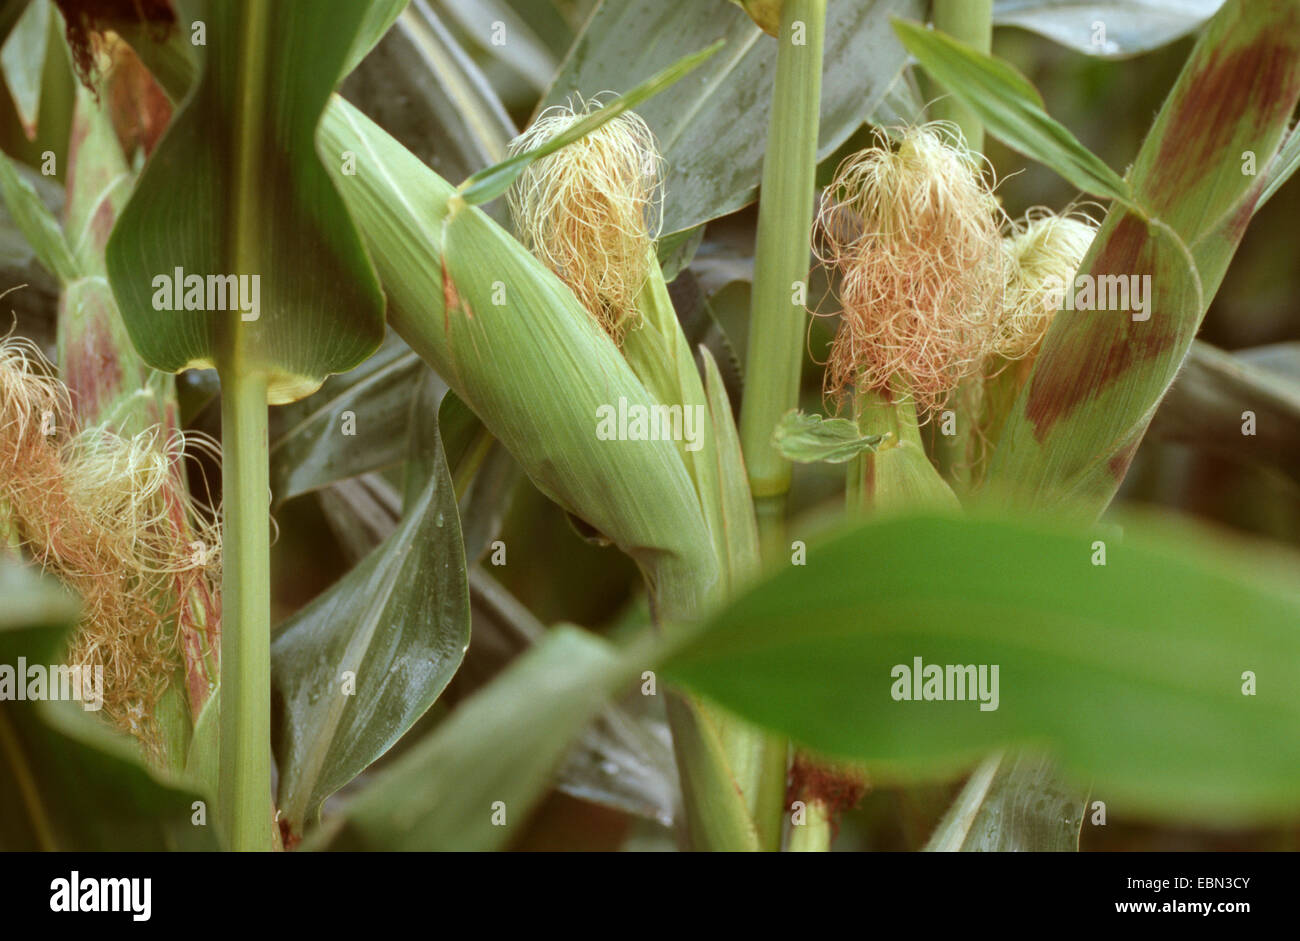 Indian corn, maize (Zea mays), blooming female inflorescence, Germany - Stock Image